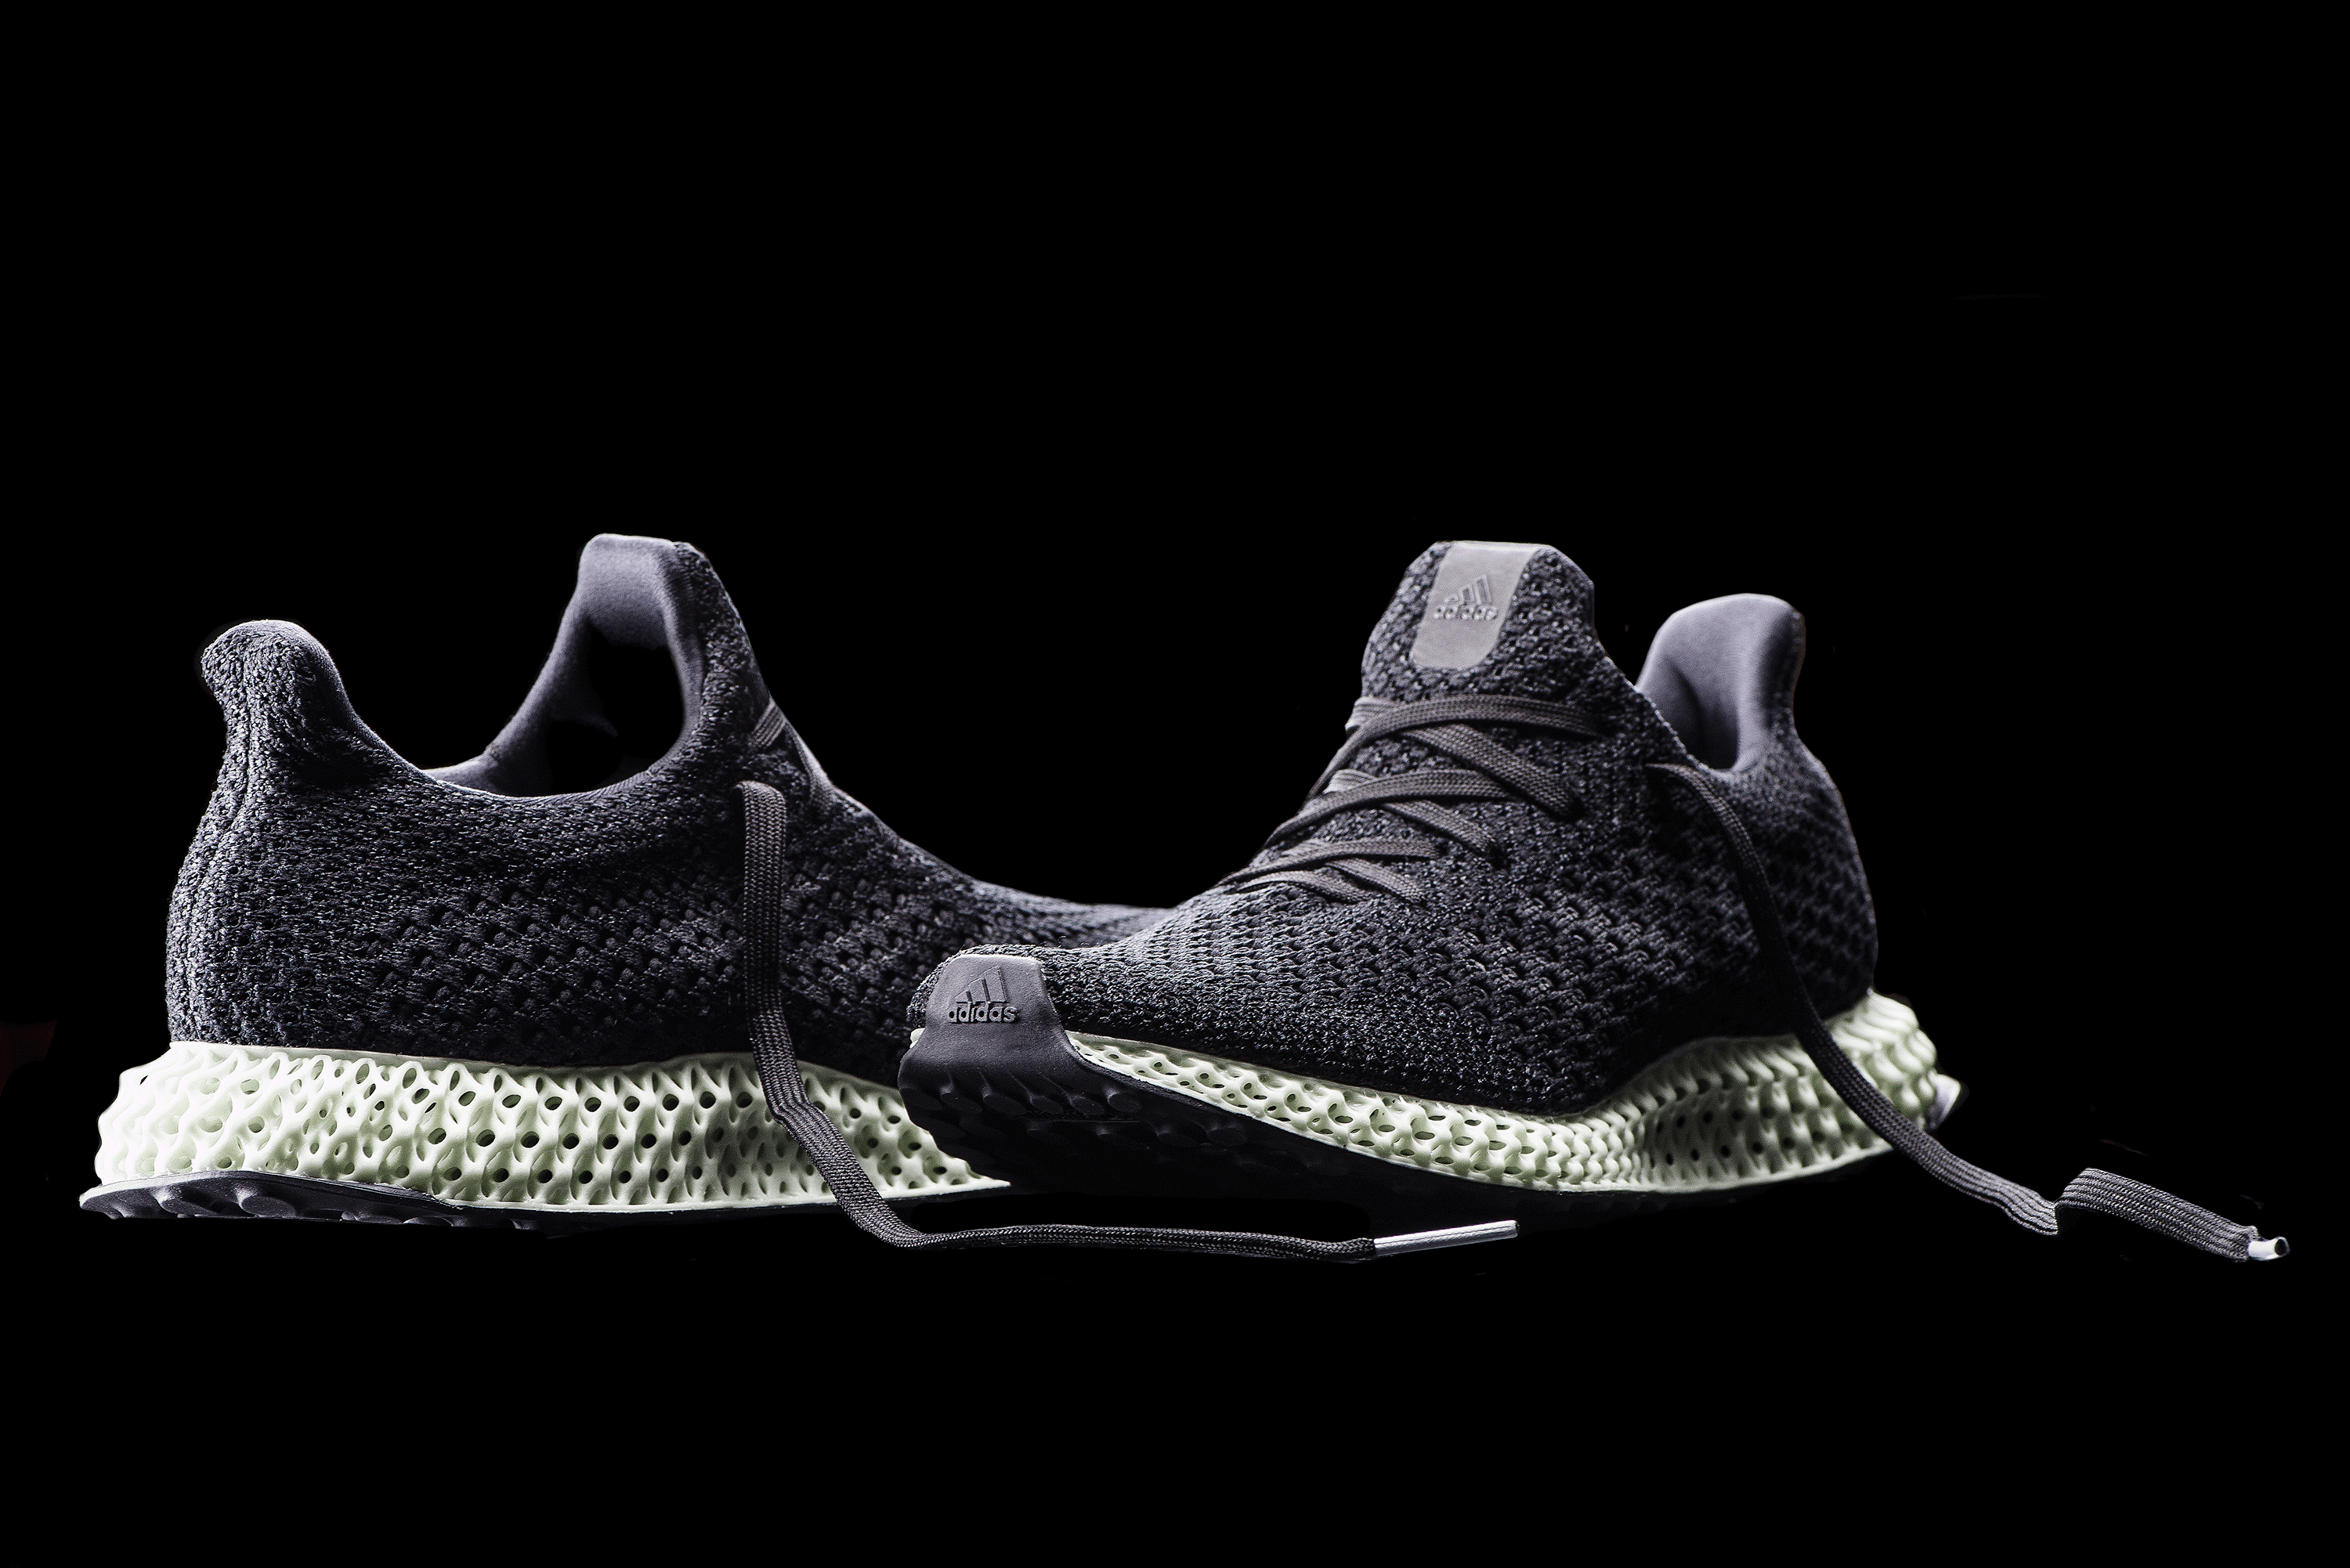 Adidas' latest 3D printed shoe puts mass production within